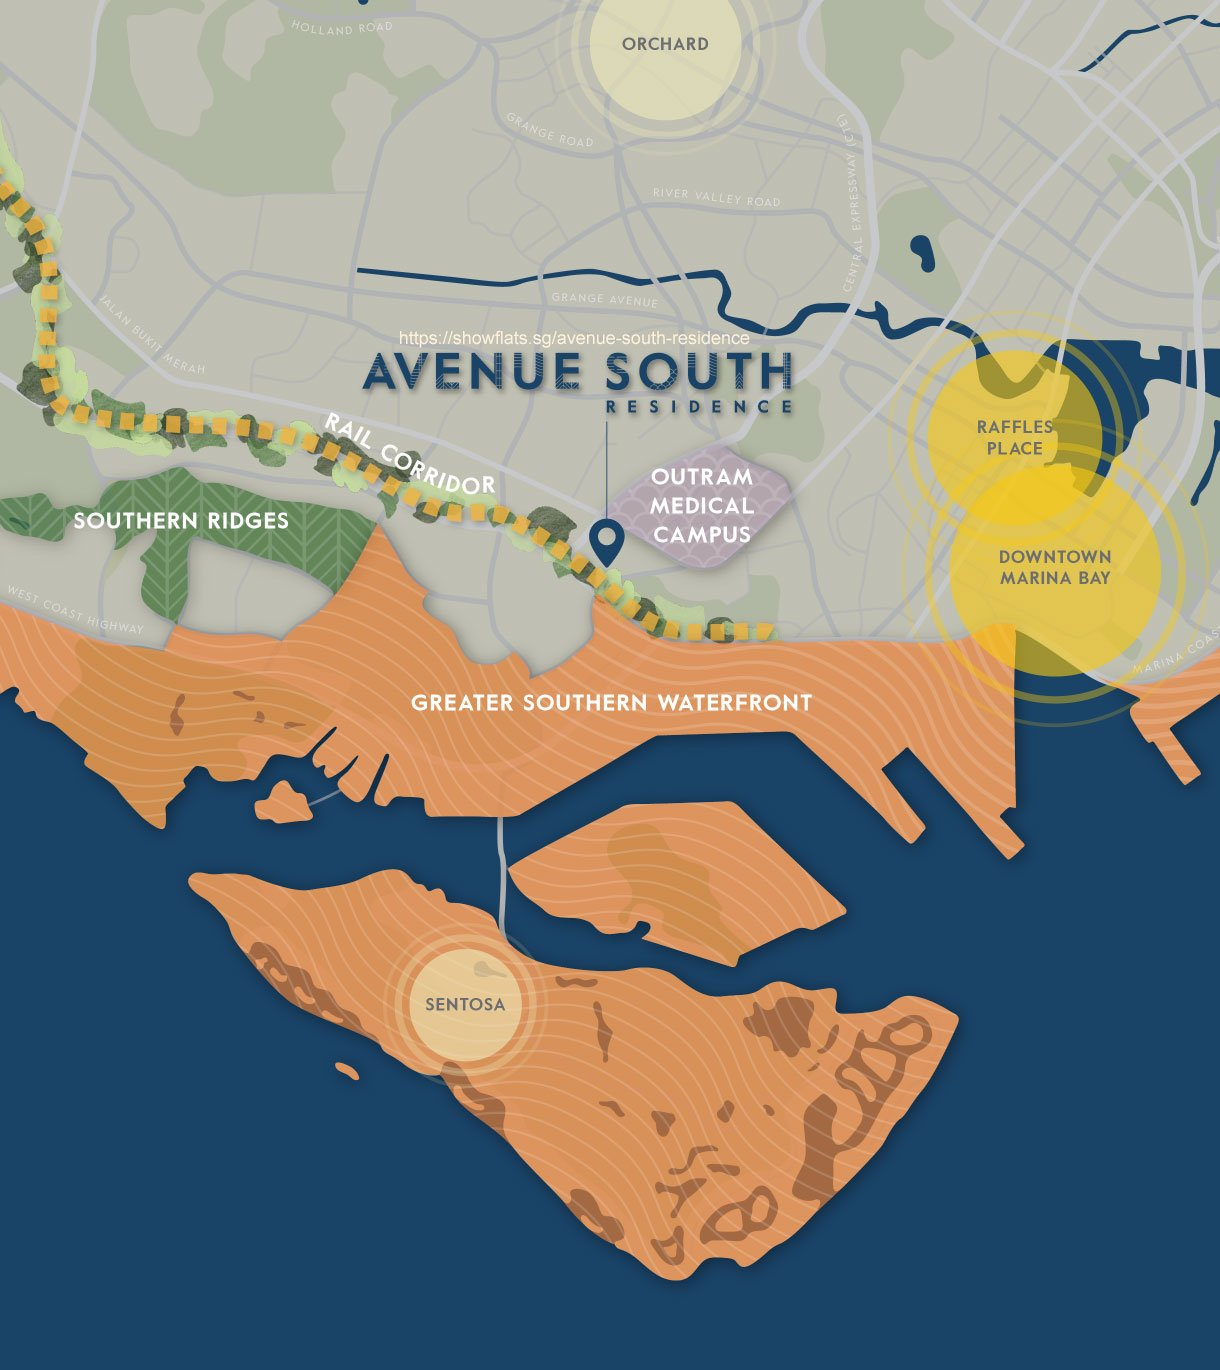 Avenue South Residence doorstes to Greater Southern Waterfront